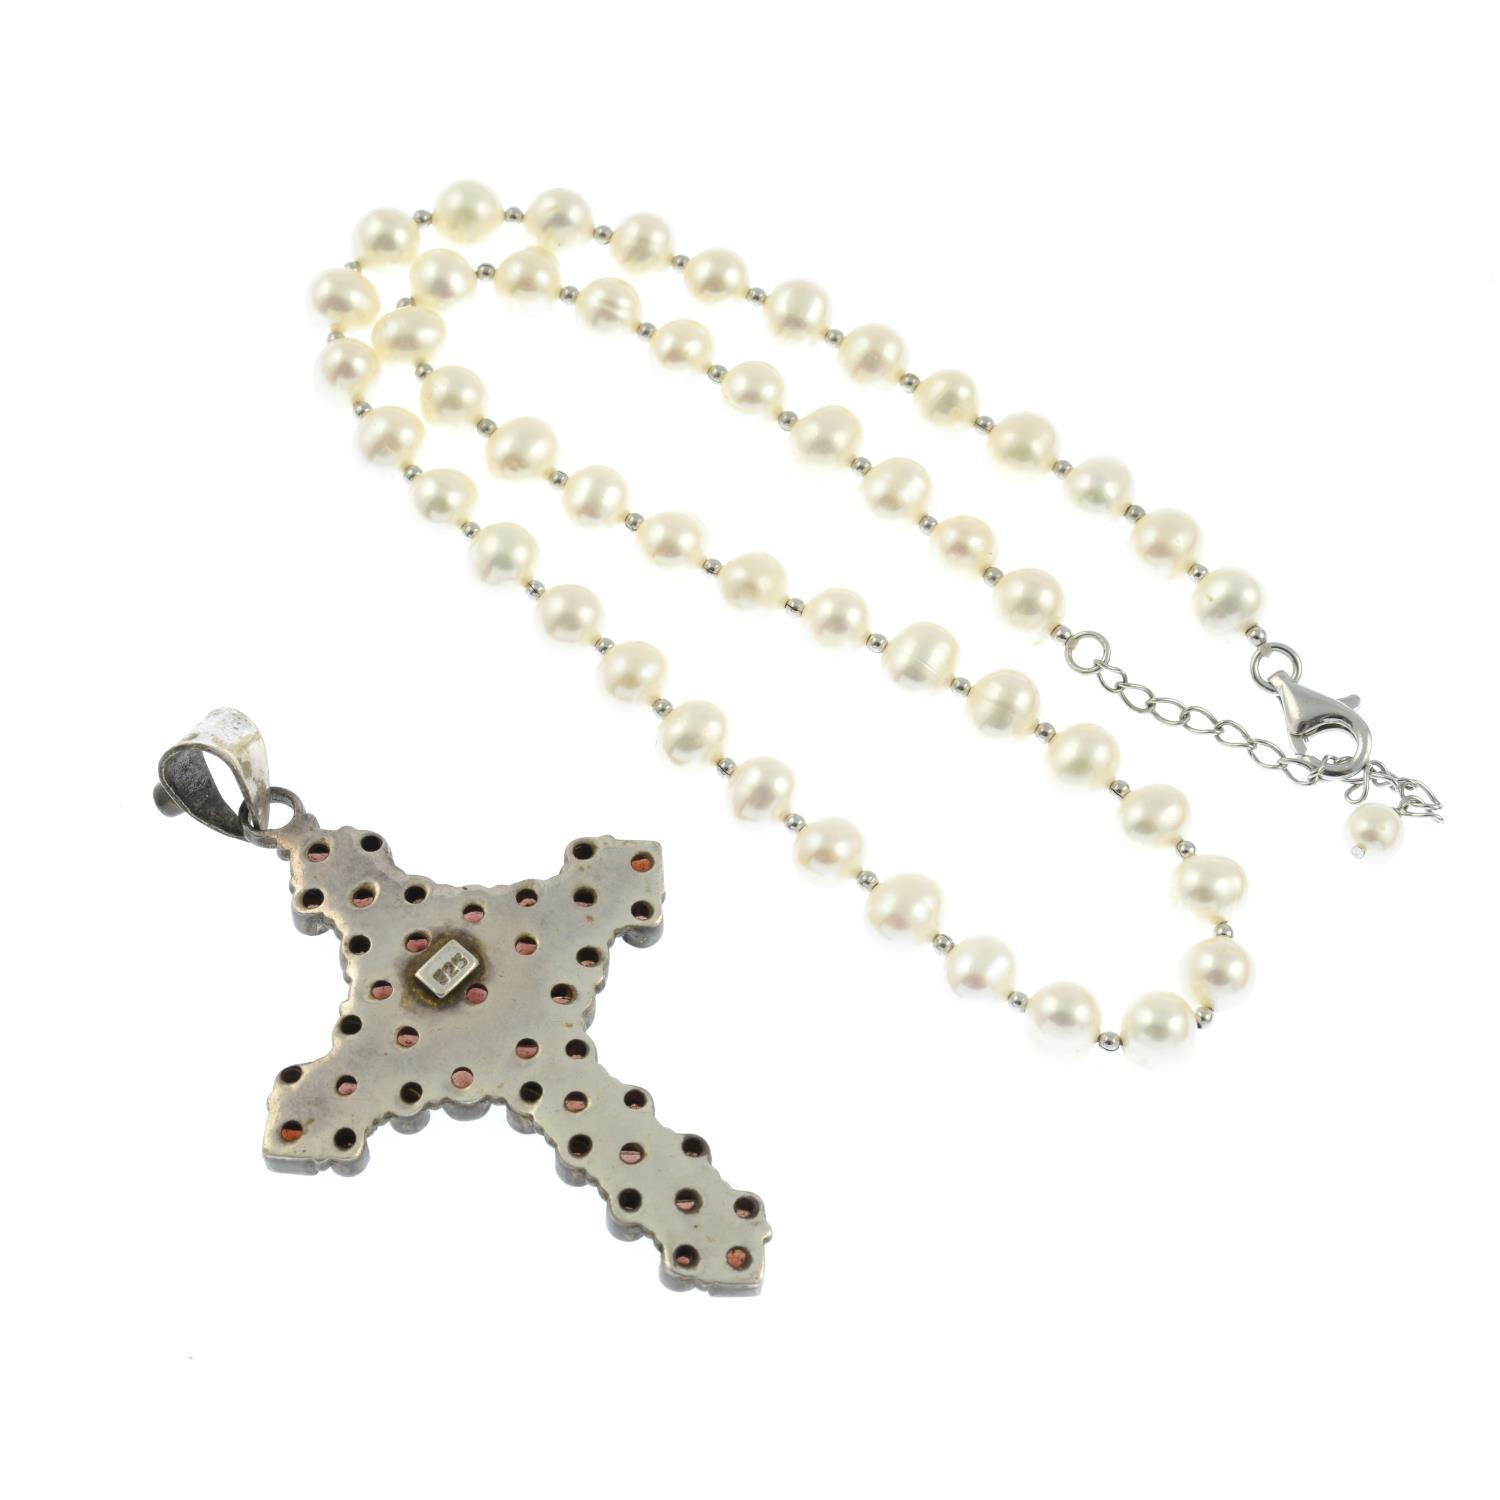 A garnet cross pendant and cultured pearl necklace.Stamped 925.Length of pendant 7.8cms. - Image 2 of 2